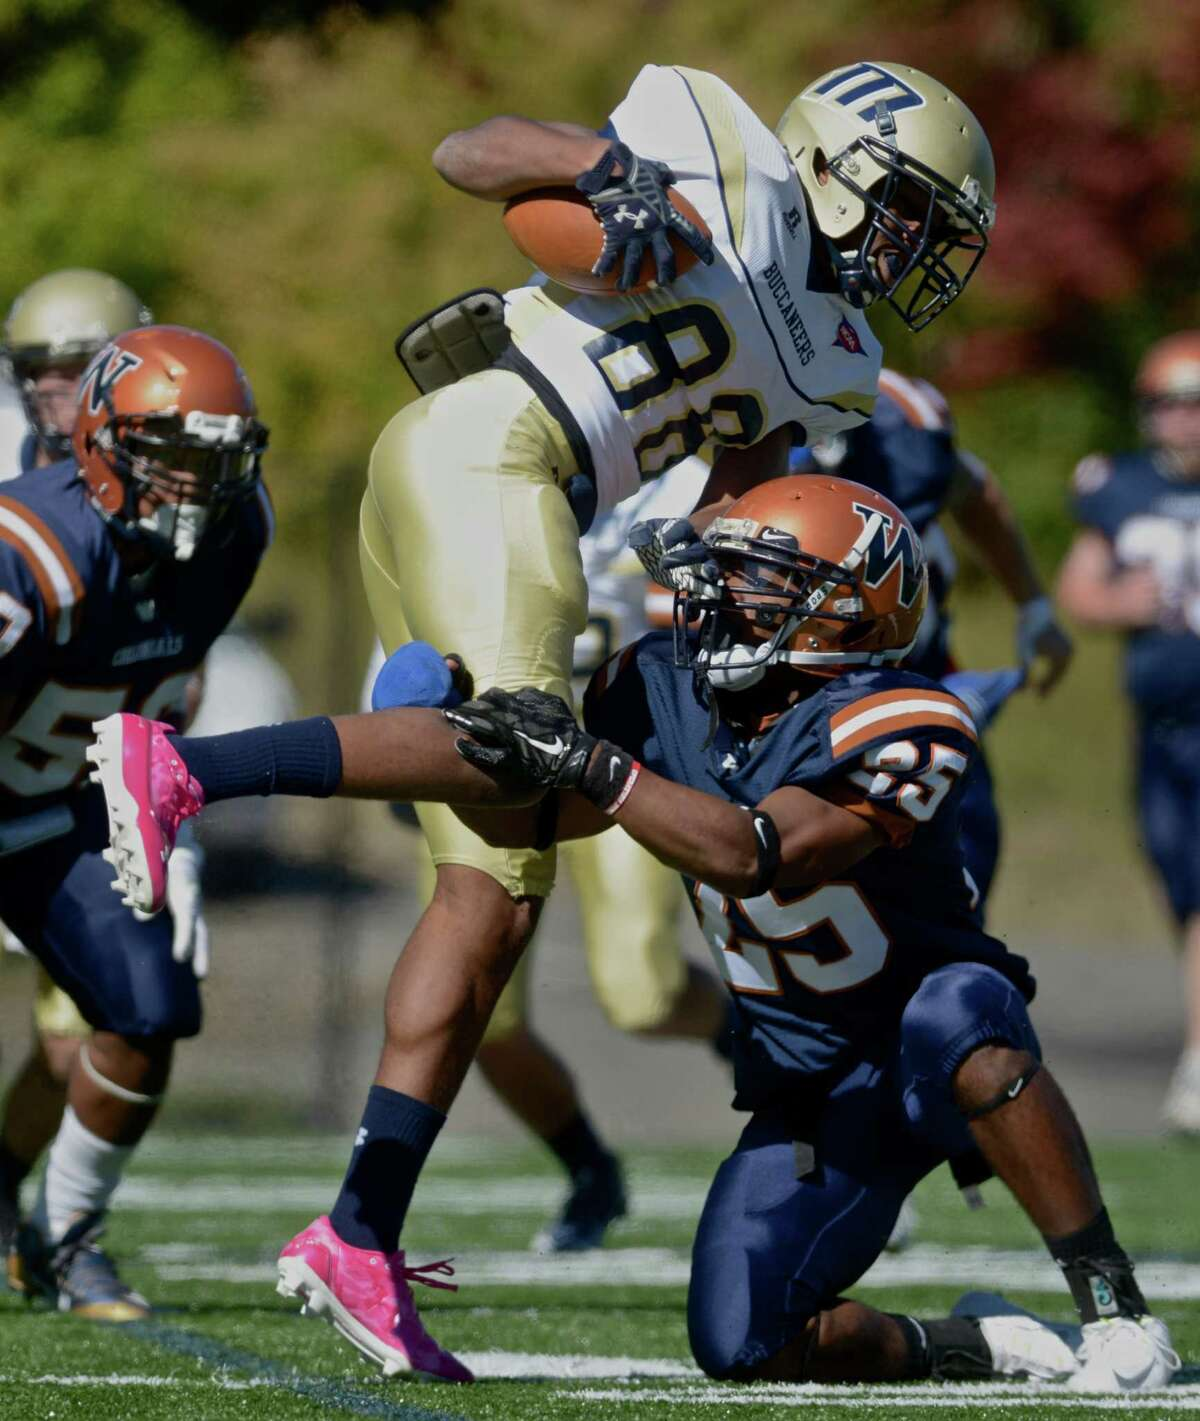 Western's Equan Brooks (25) stops Maritime's Adrell Enlow (88) on a kickoff return in the Western Connecticut State University football game against Massachusetts Maritime Academy, on Saturday, October 10, 2015, on Western's Westside Campus, in Danbury, Conn.